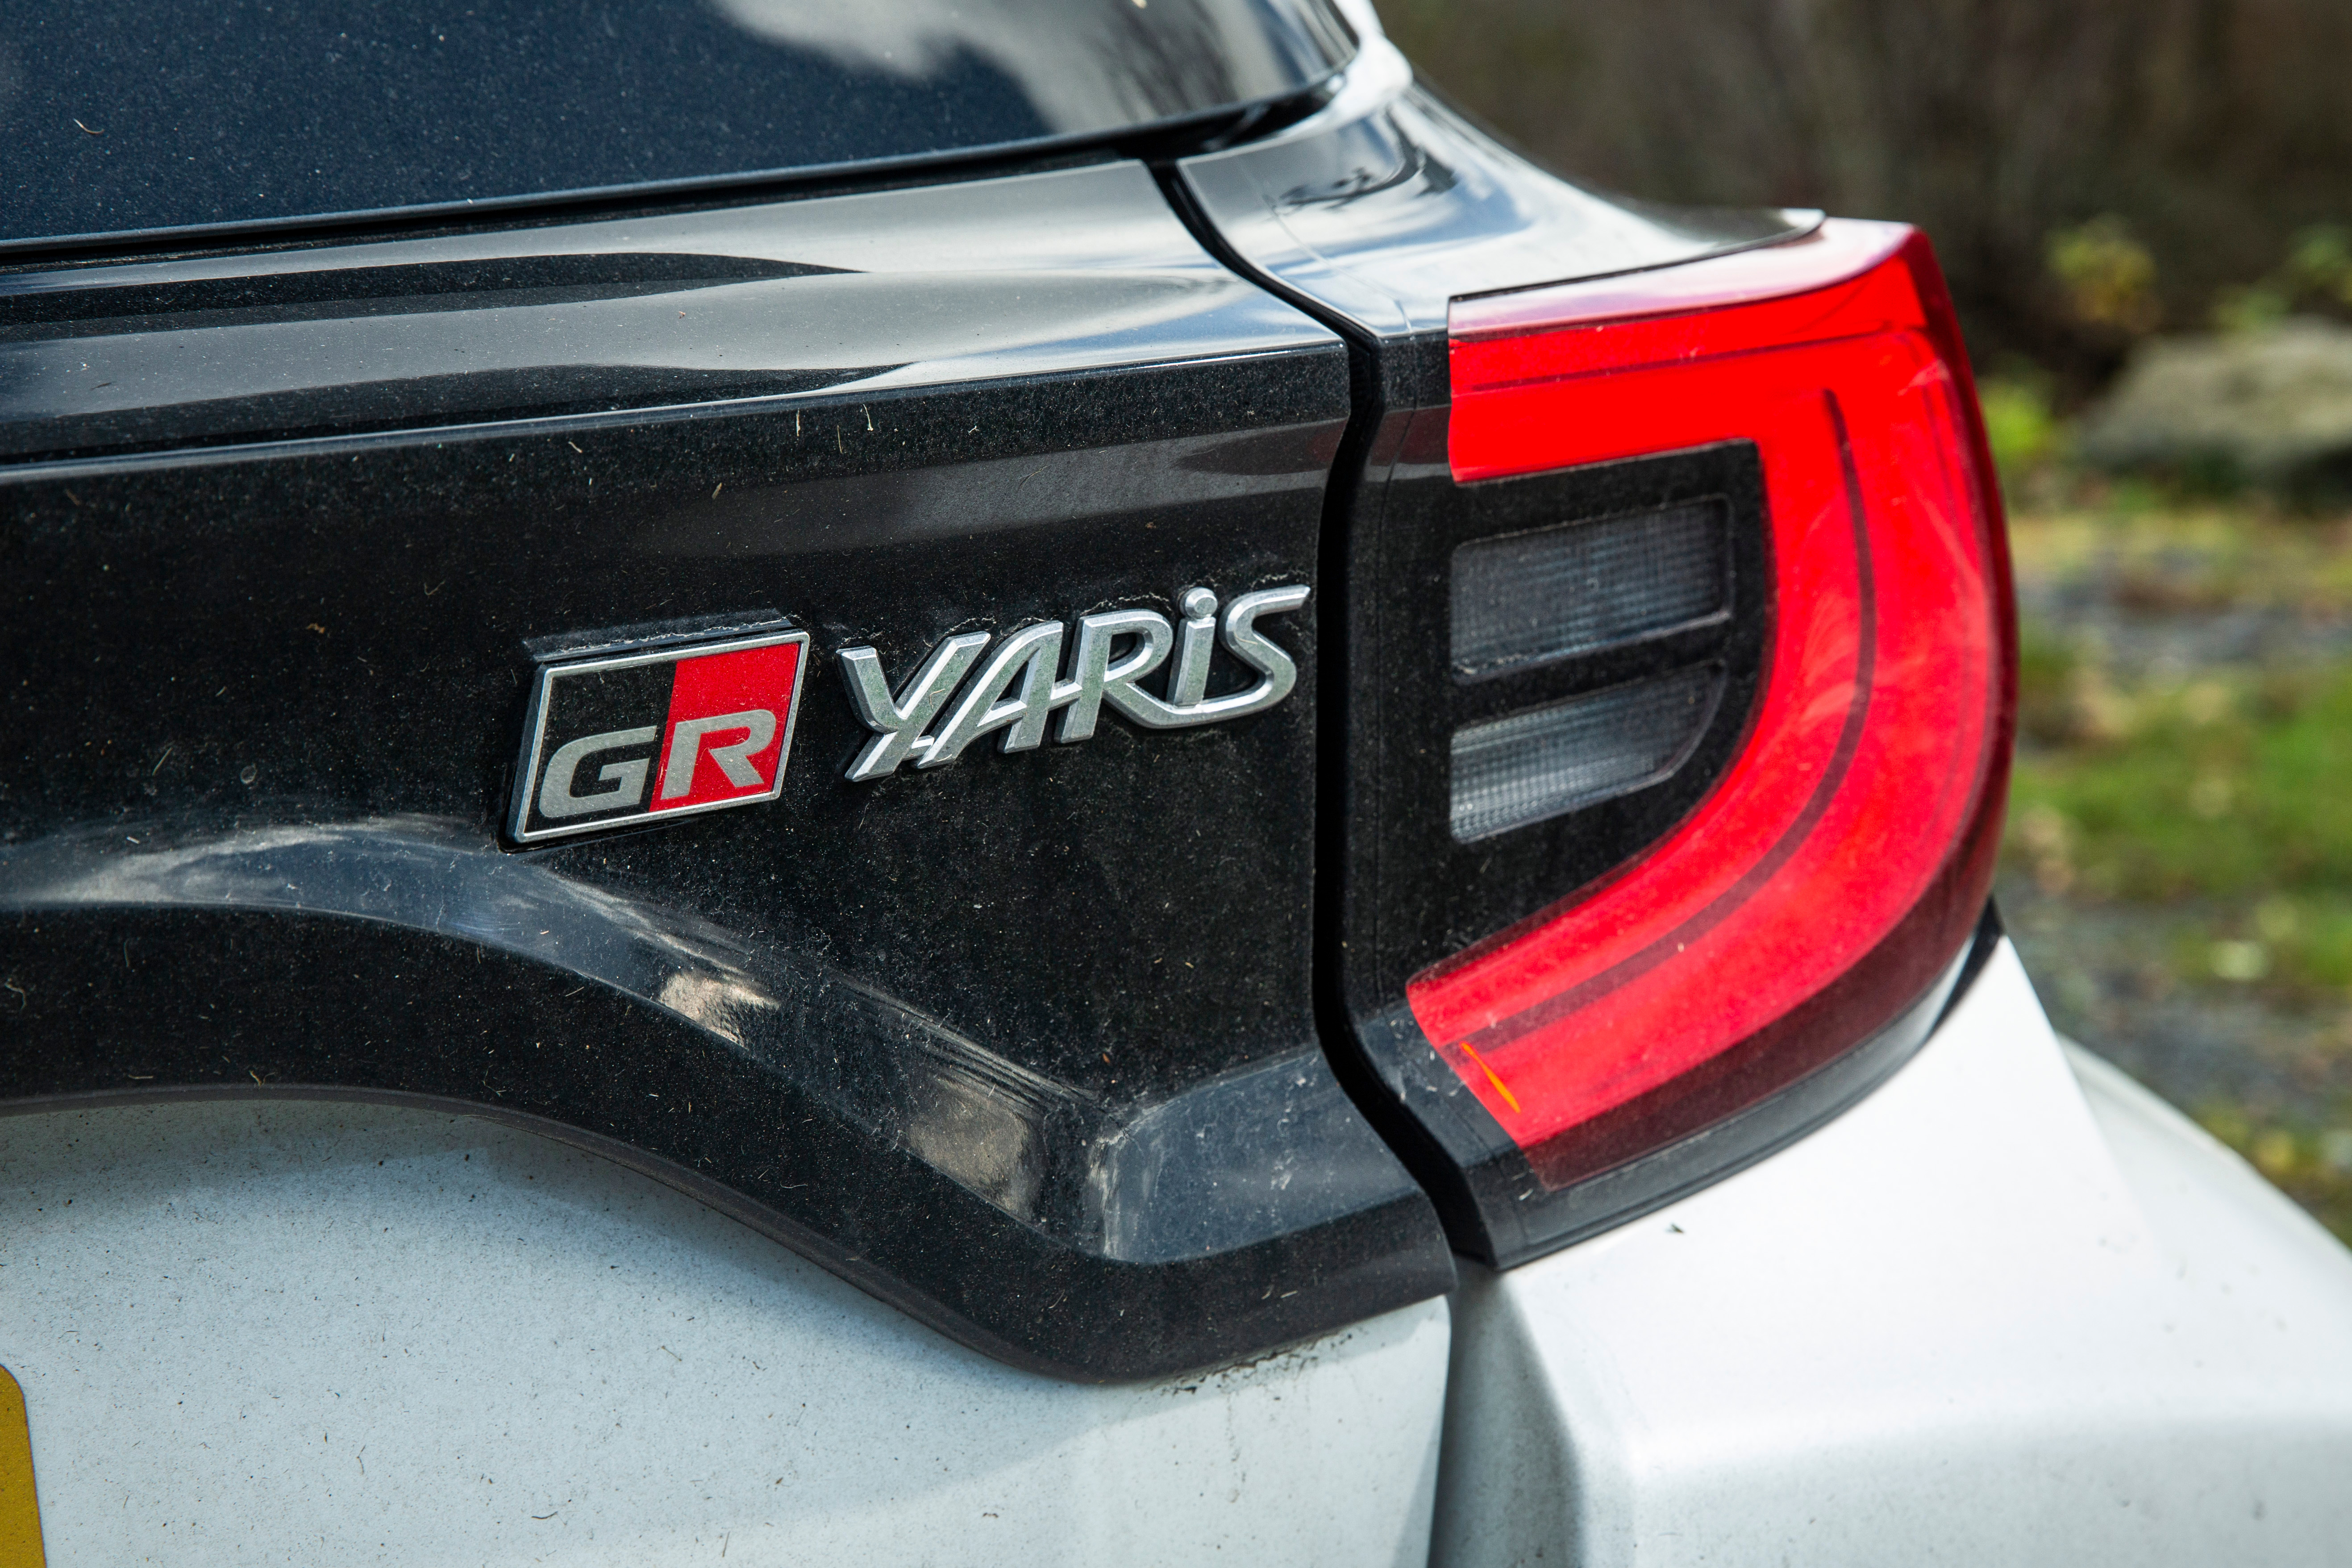 Note the letters GR, which stand for Gazoo Racing